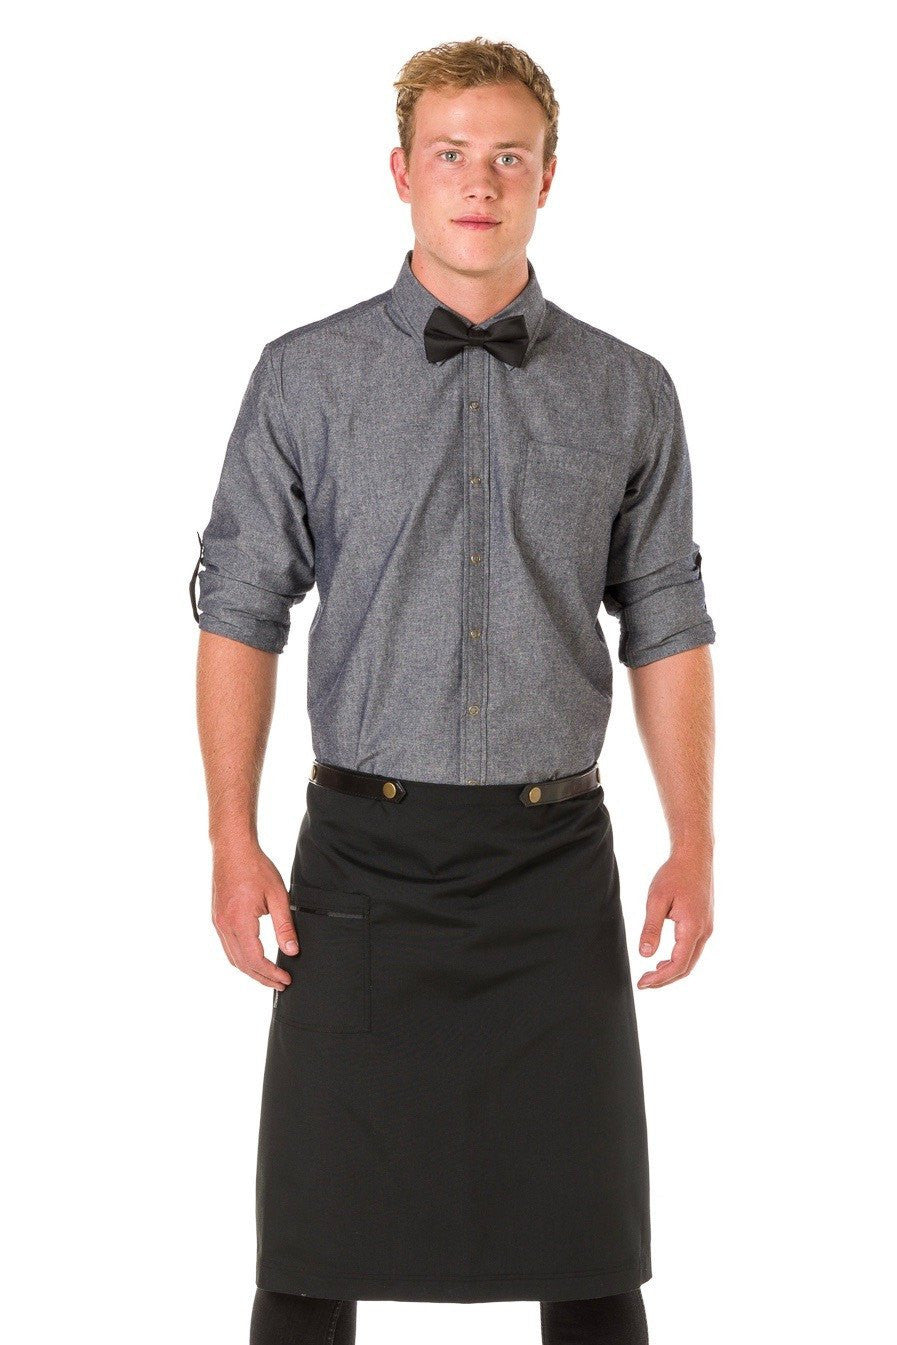 ARCHER Waist Apron with PU Leather studded strap - BLACK